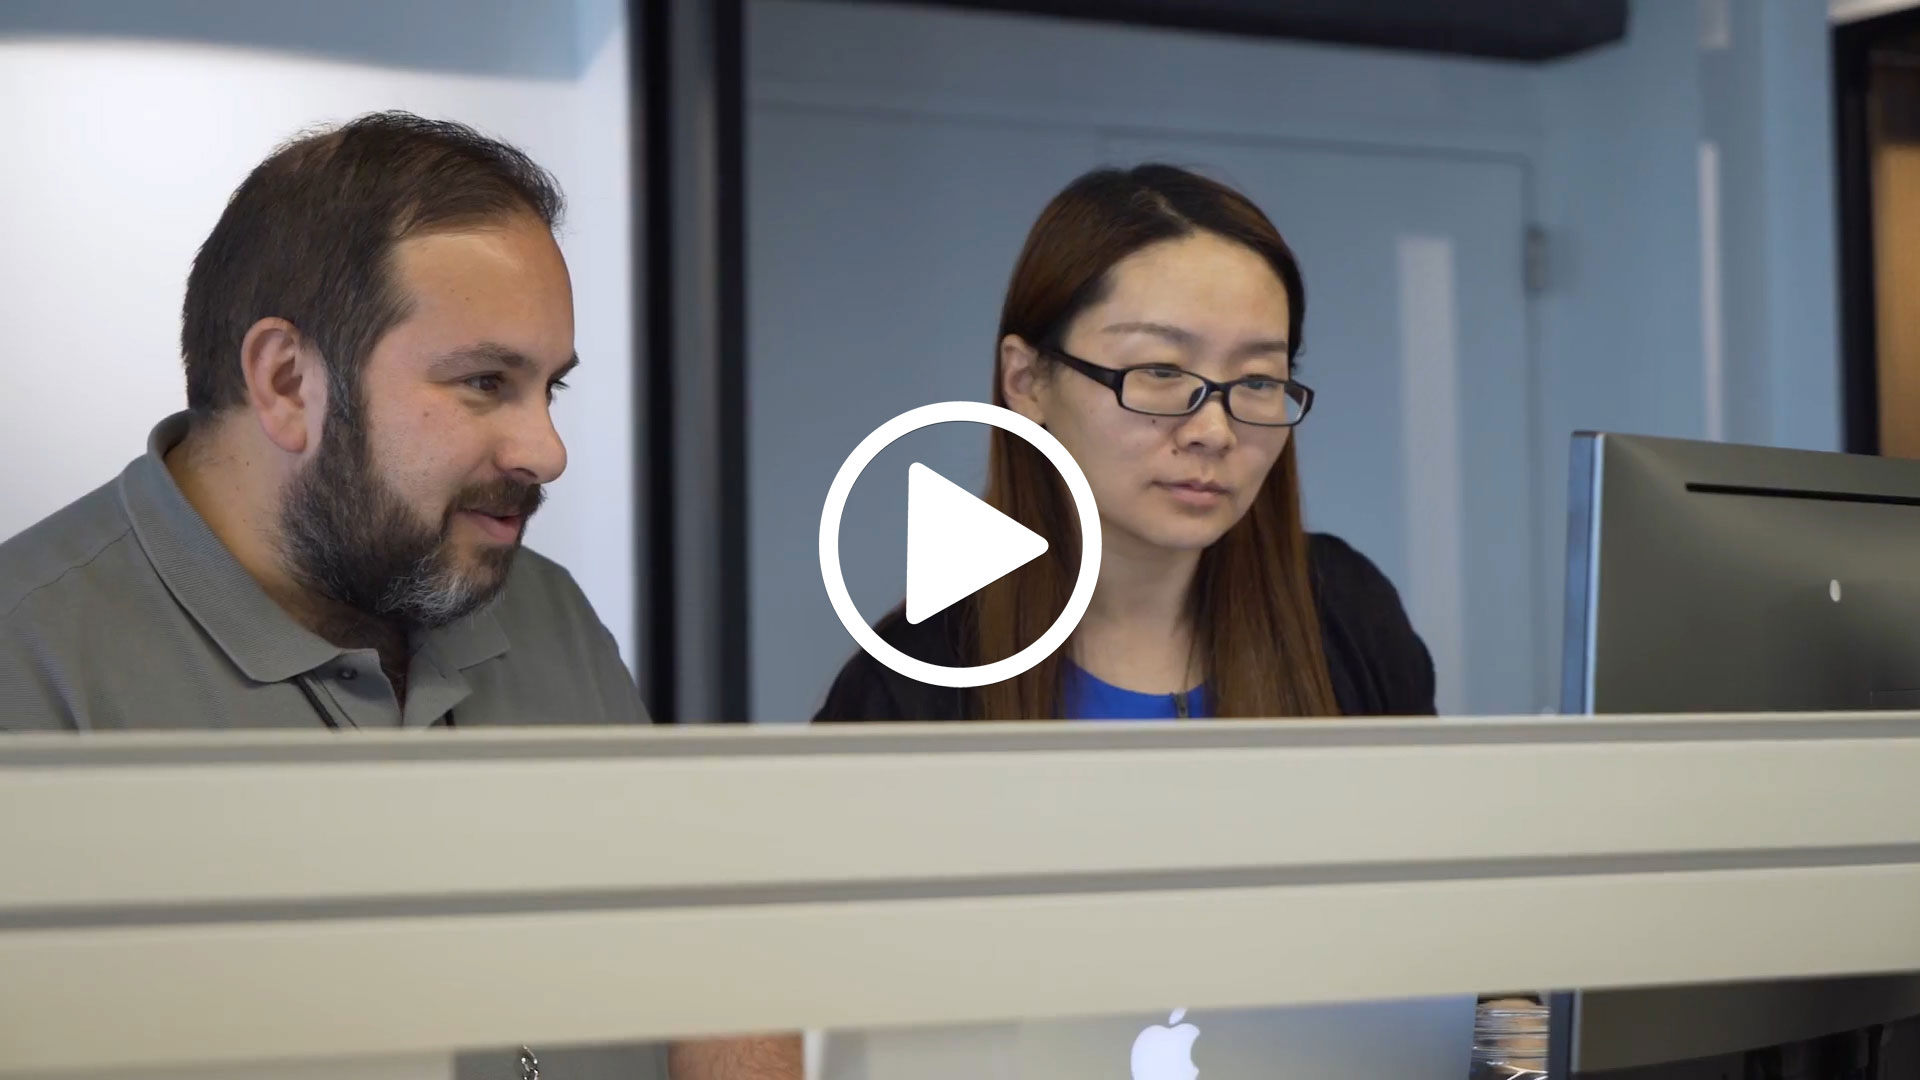 Grow. Transform. Lead. Win. - Video for Newell Brands hosted by Digi-Me